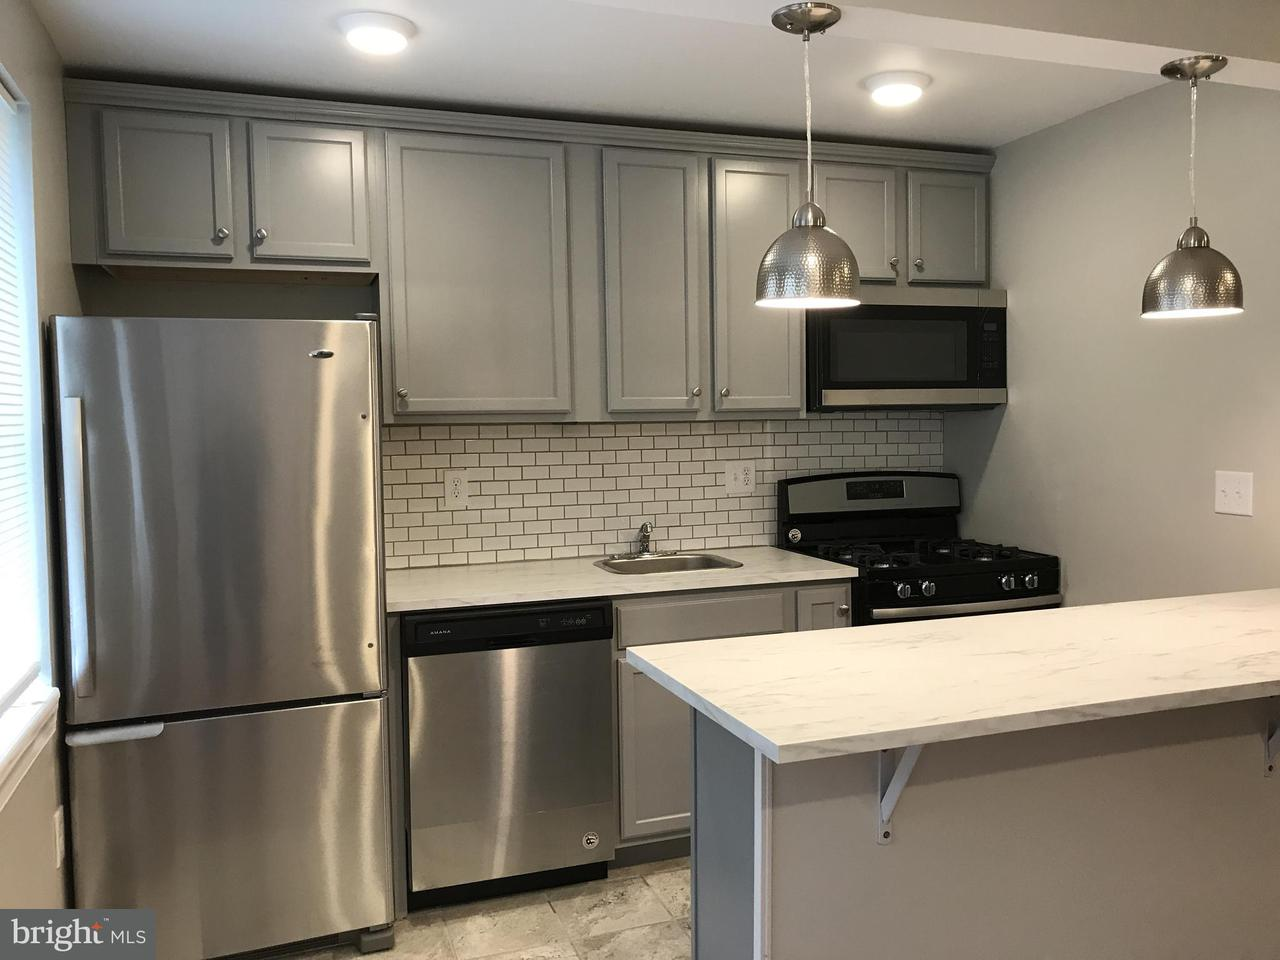 Other Residential for Rent at 5402 Midwood Ave #2 Baltimore, Maryland 21212 United States